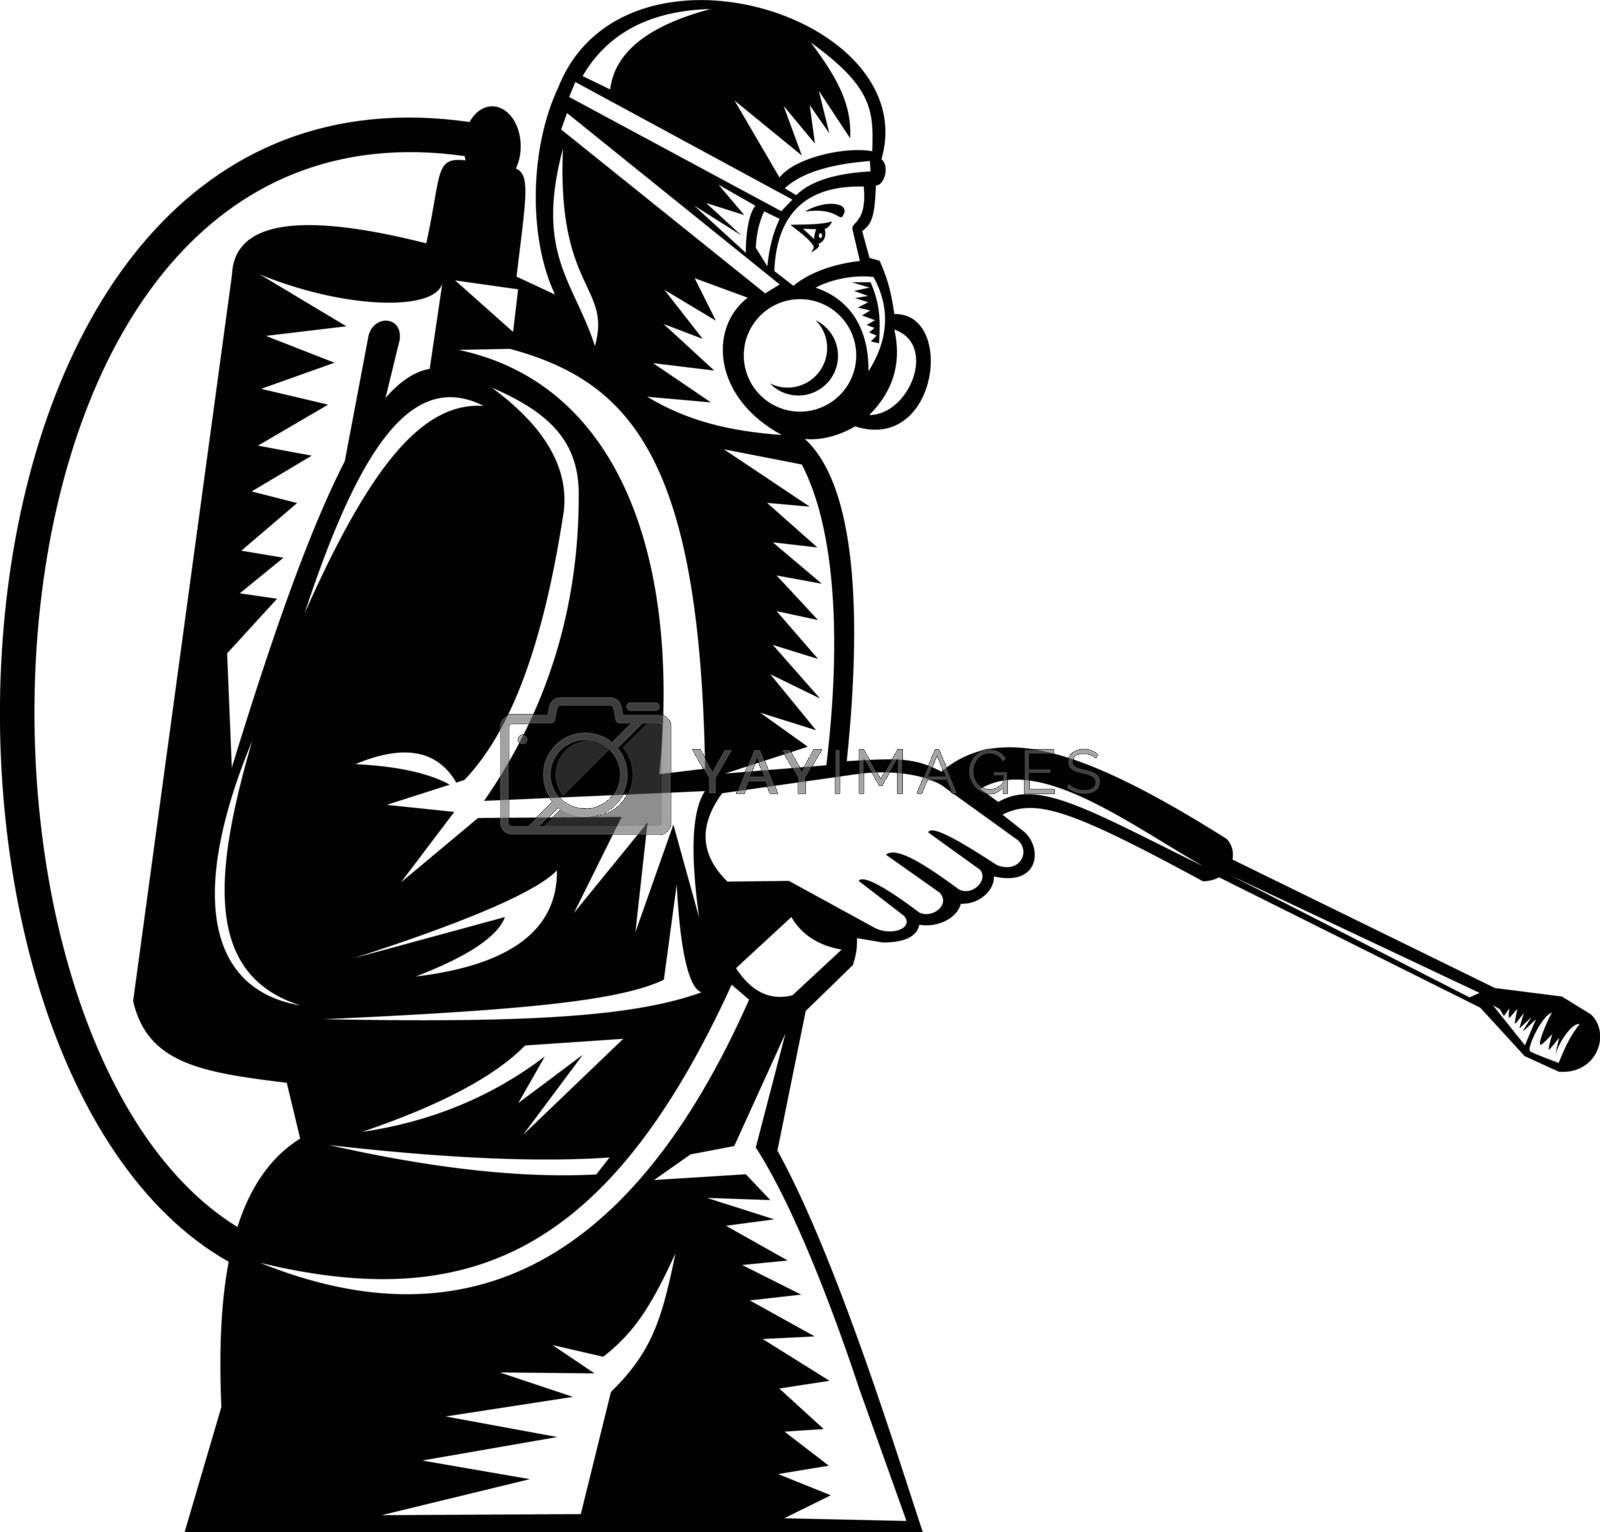 Black and white illustration of pest control exterminator spraying side view on isolated background done in retro woodcut style.